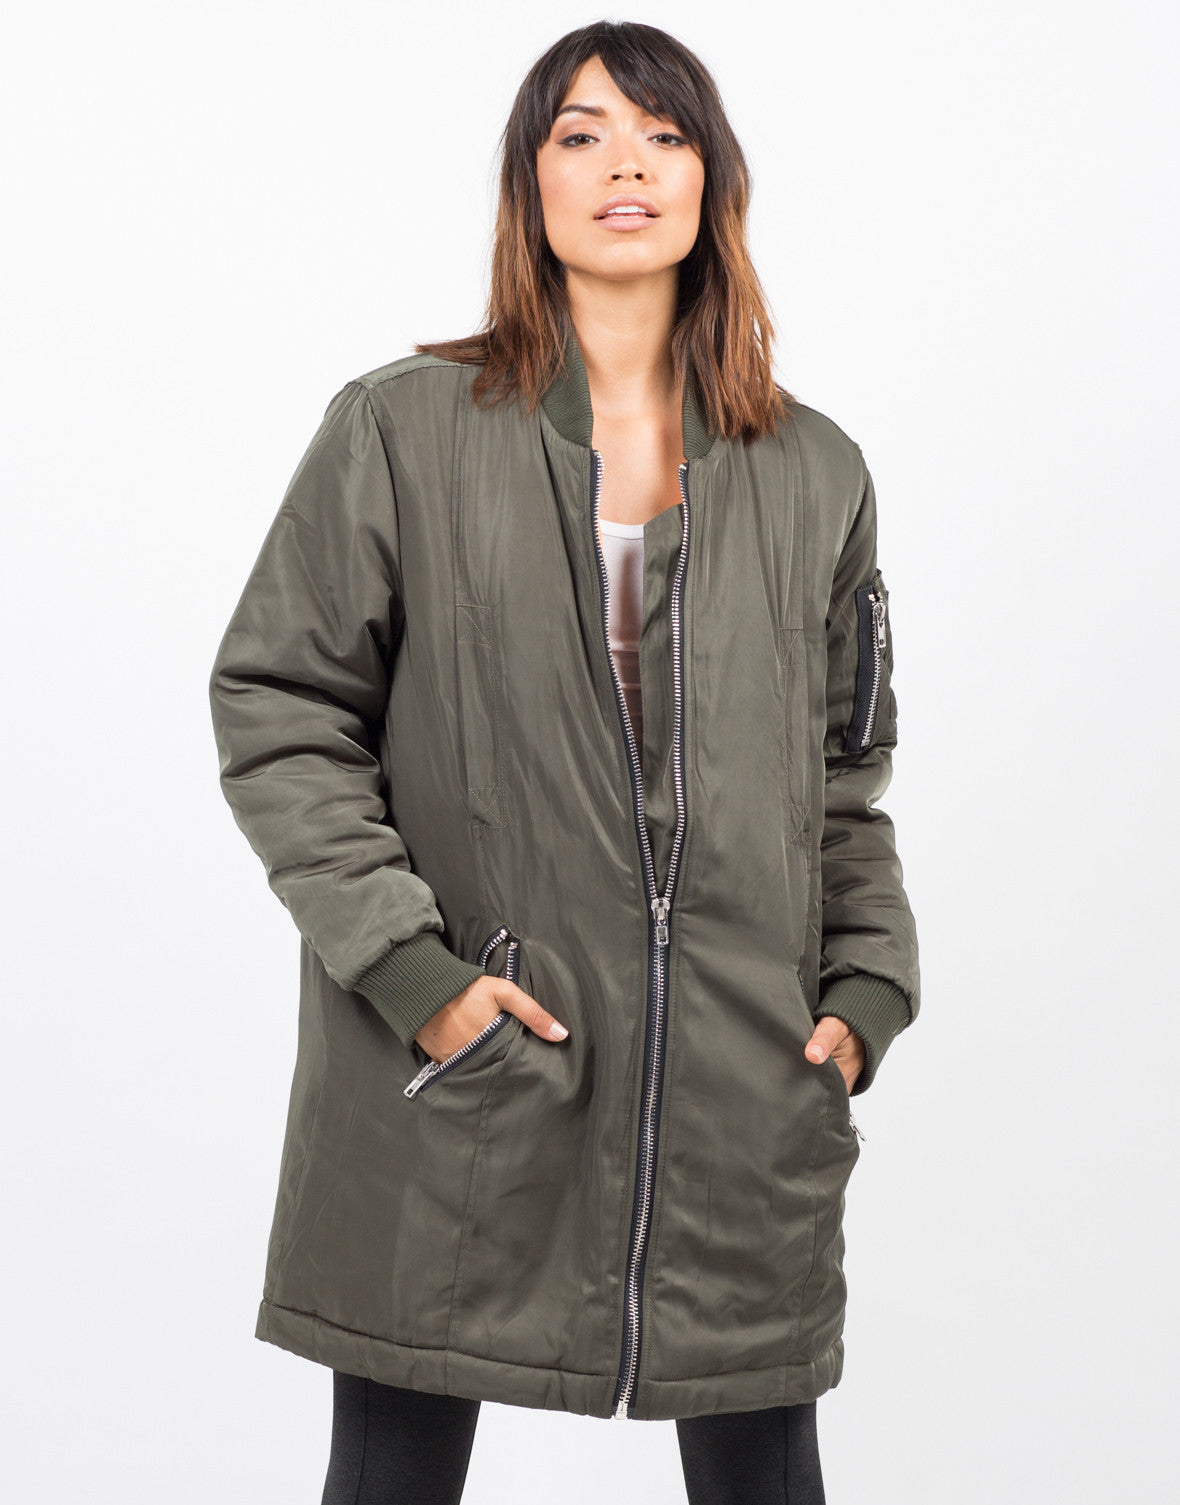 Front View of Oversized Long Bomber Jacket